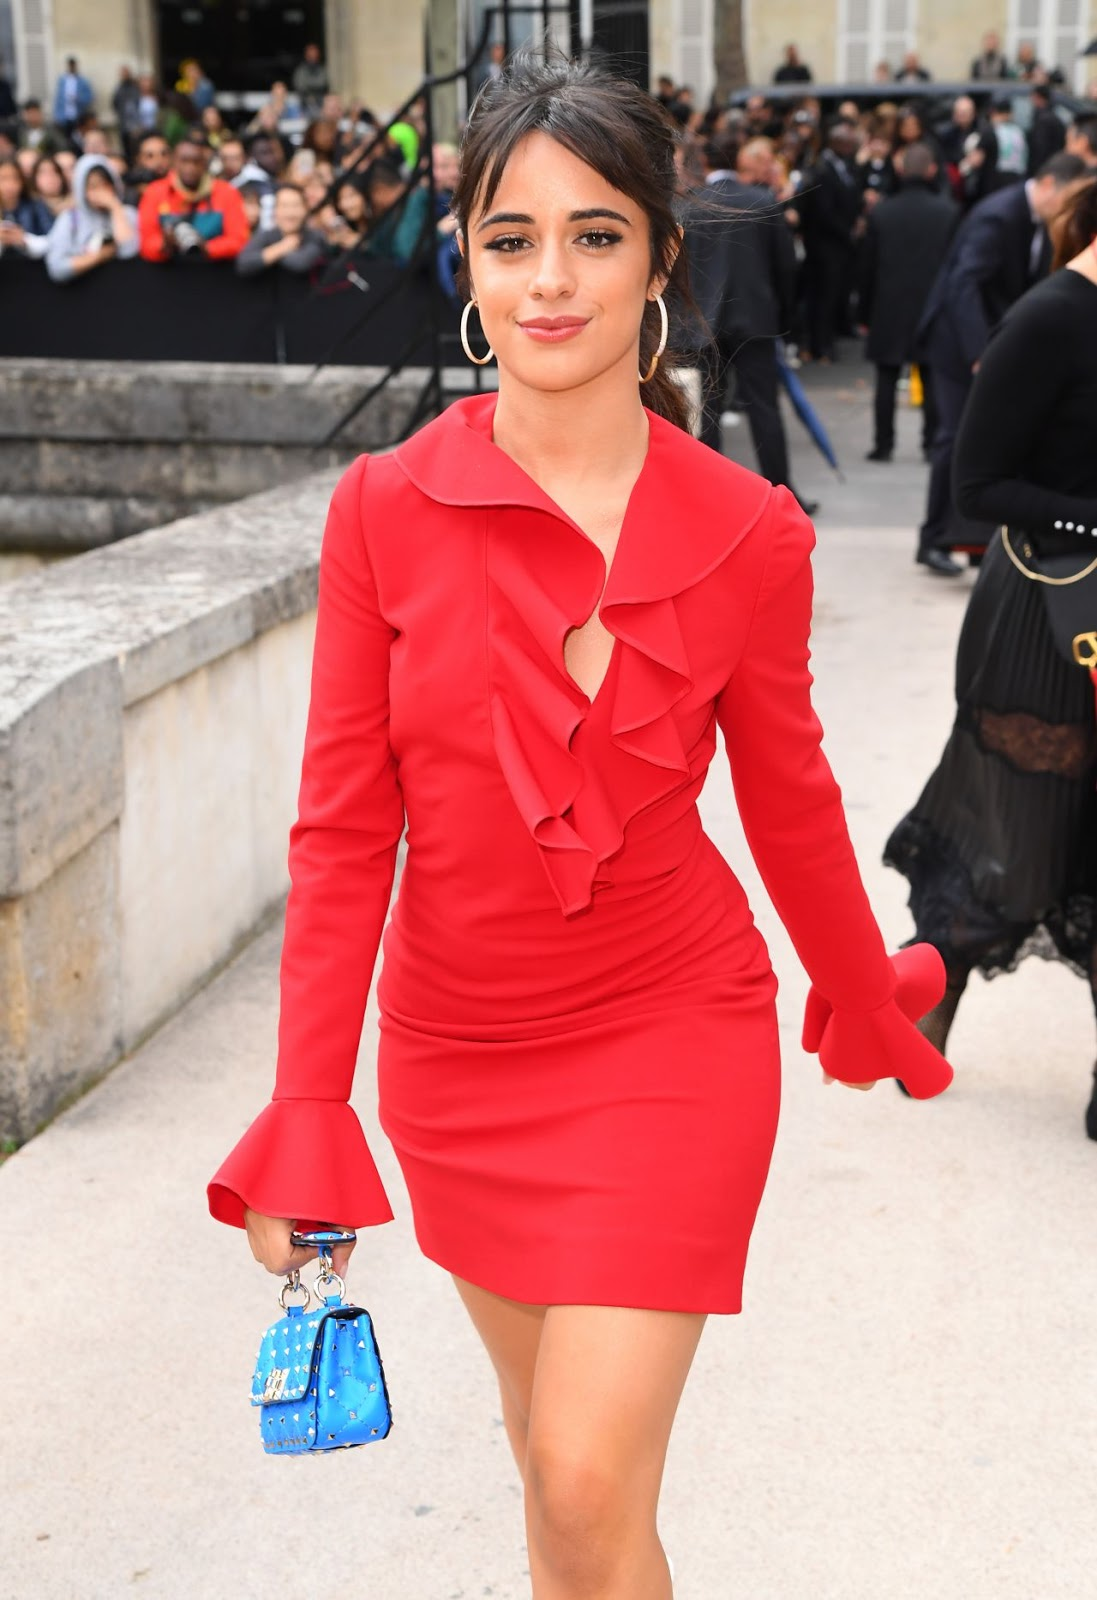 Camila Cabello flashes her cleavage in a daring red dress with a plunging neckline